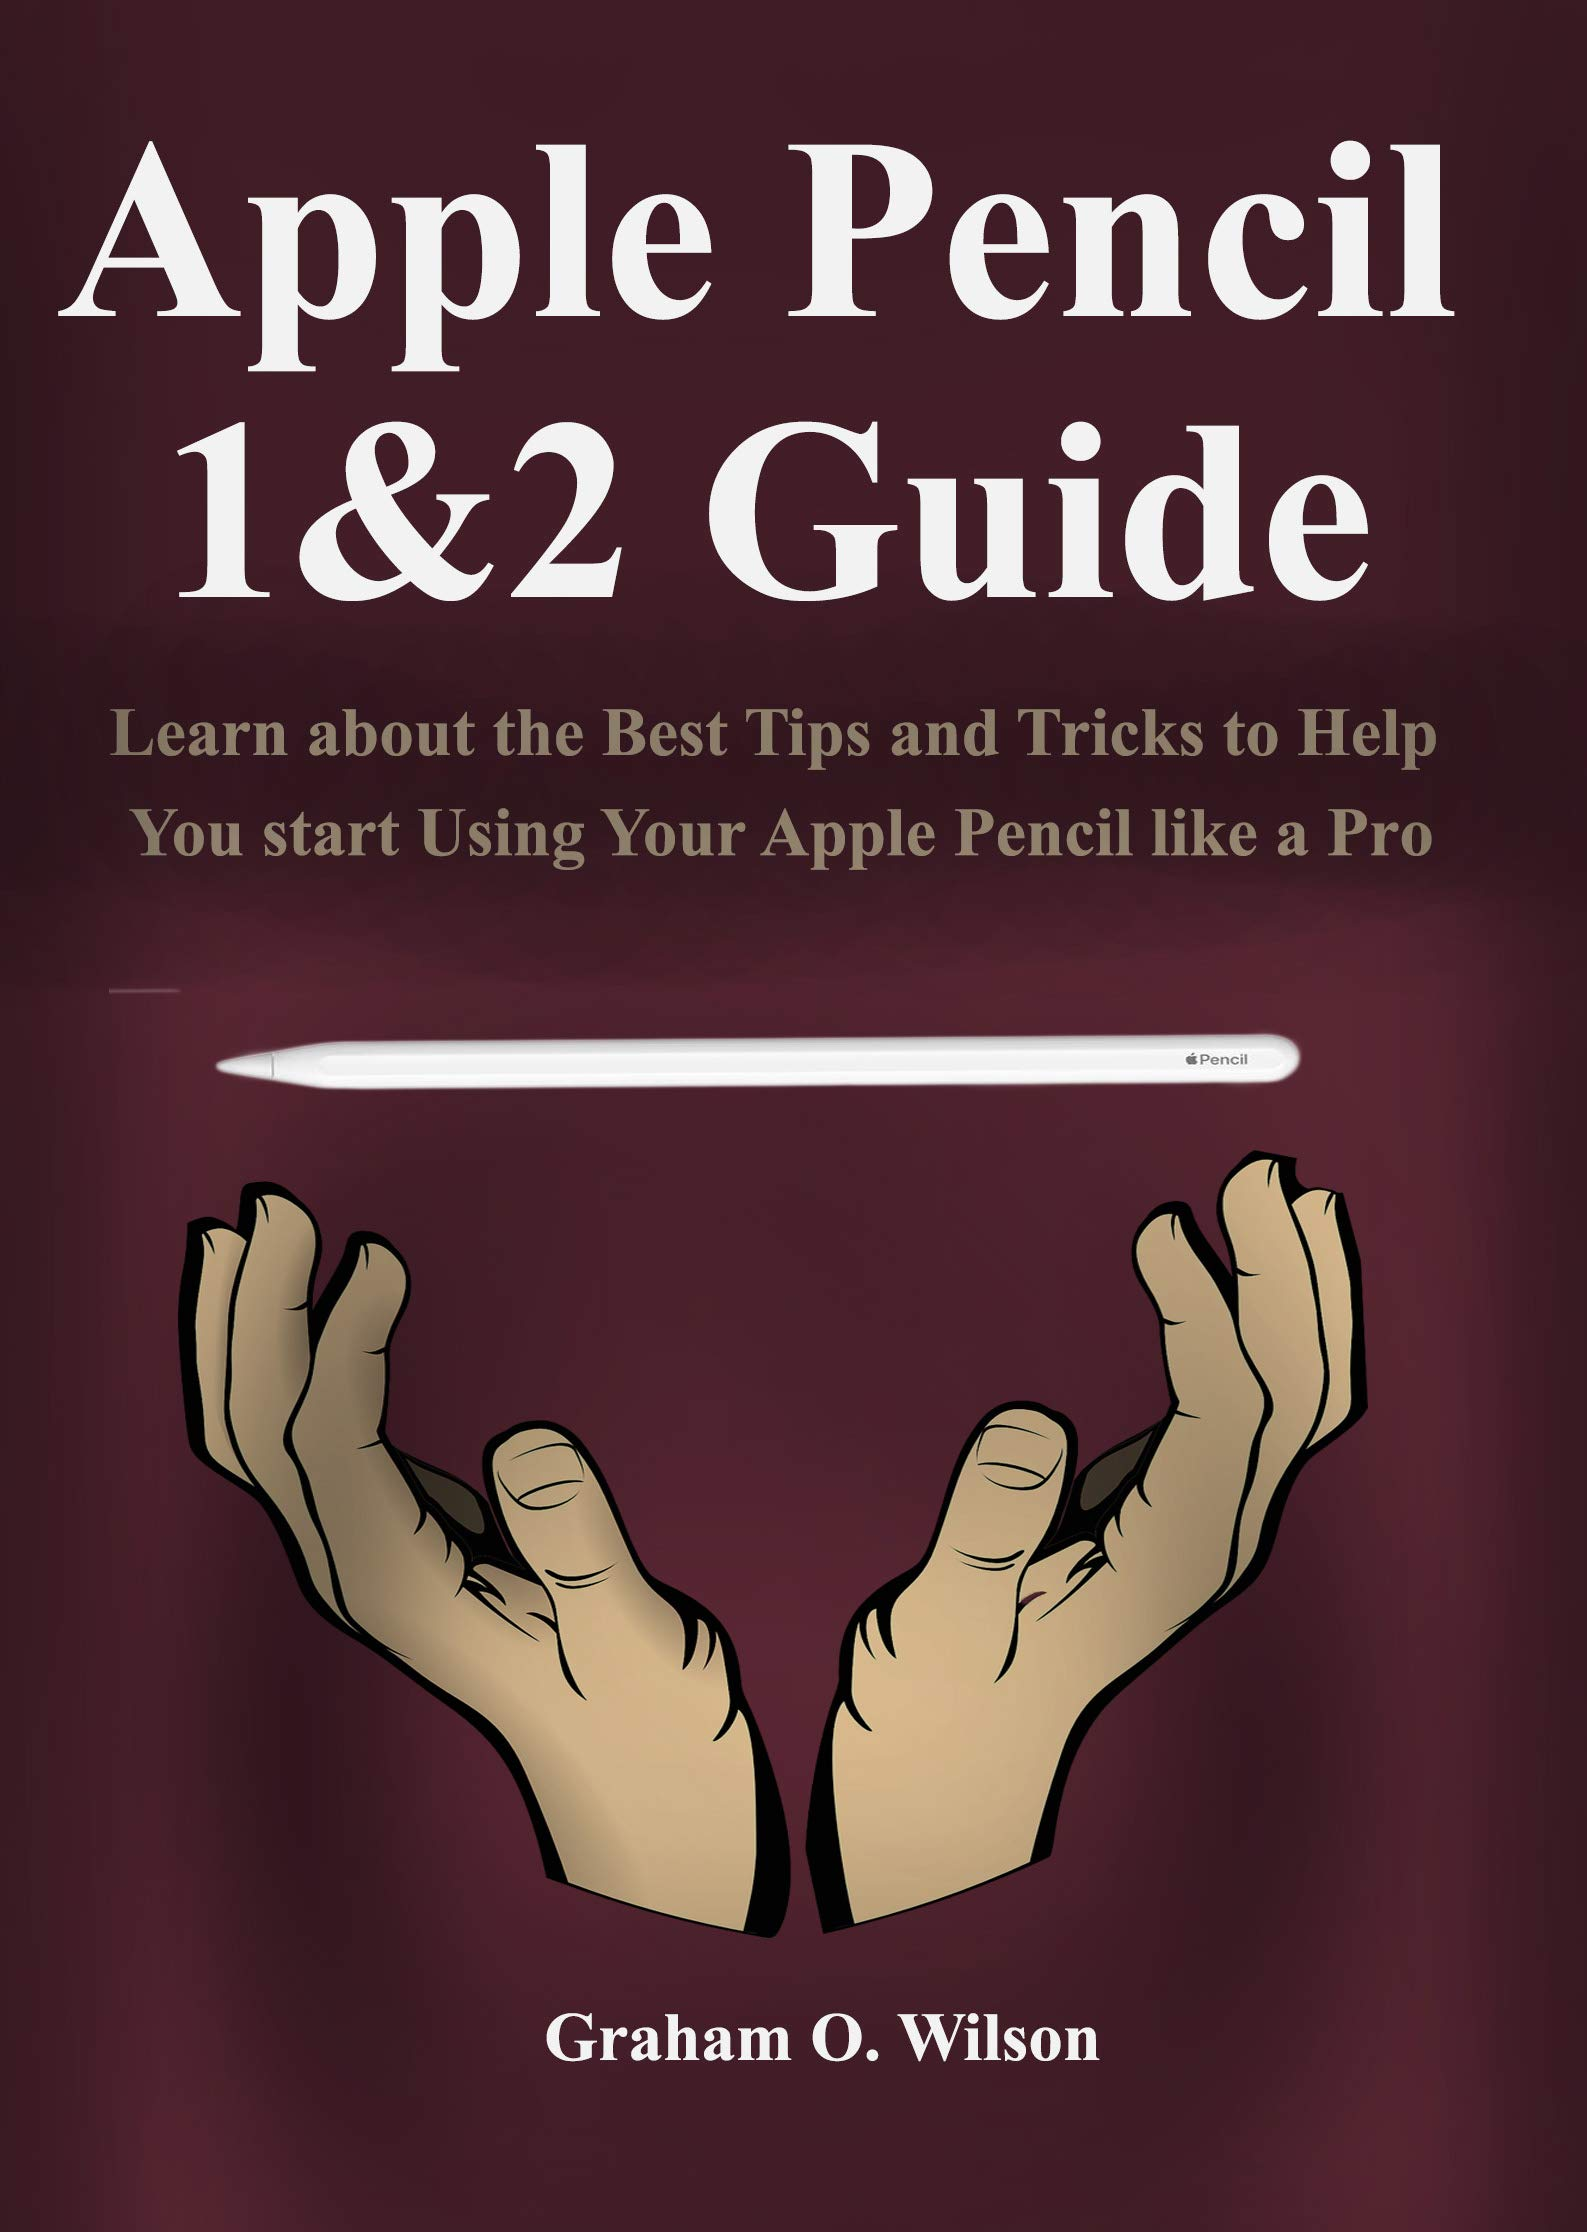 Apple Pencil 1&2 Guide: Learn about the Best Tips and Tricks to Help You start Using Your Apple Pencil like a Pro. (English Edition)